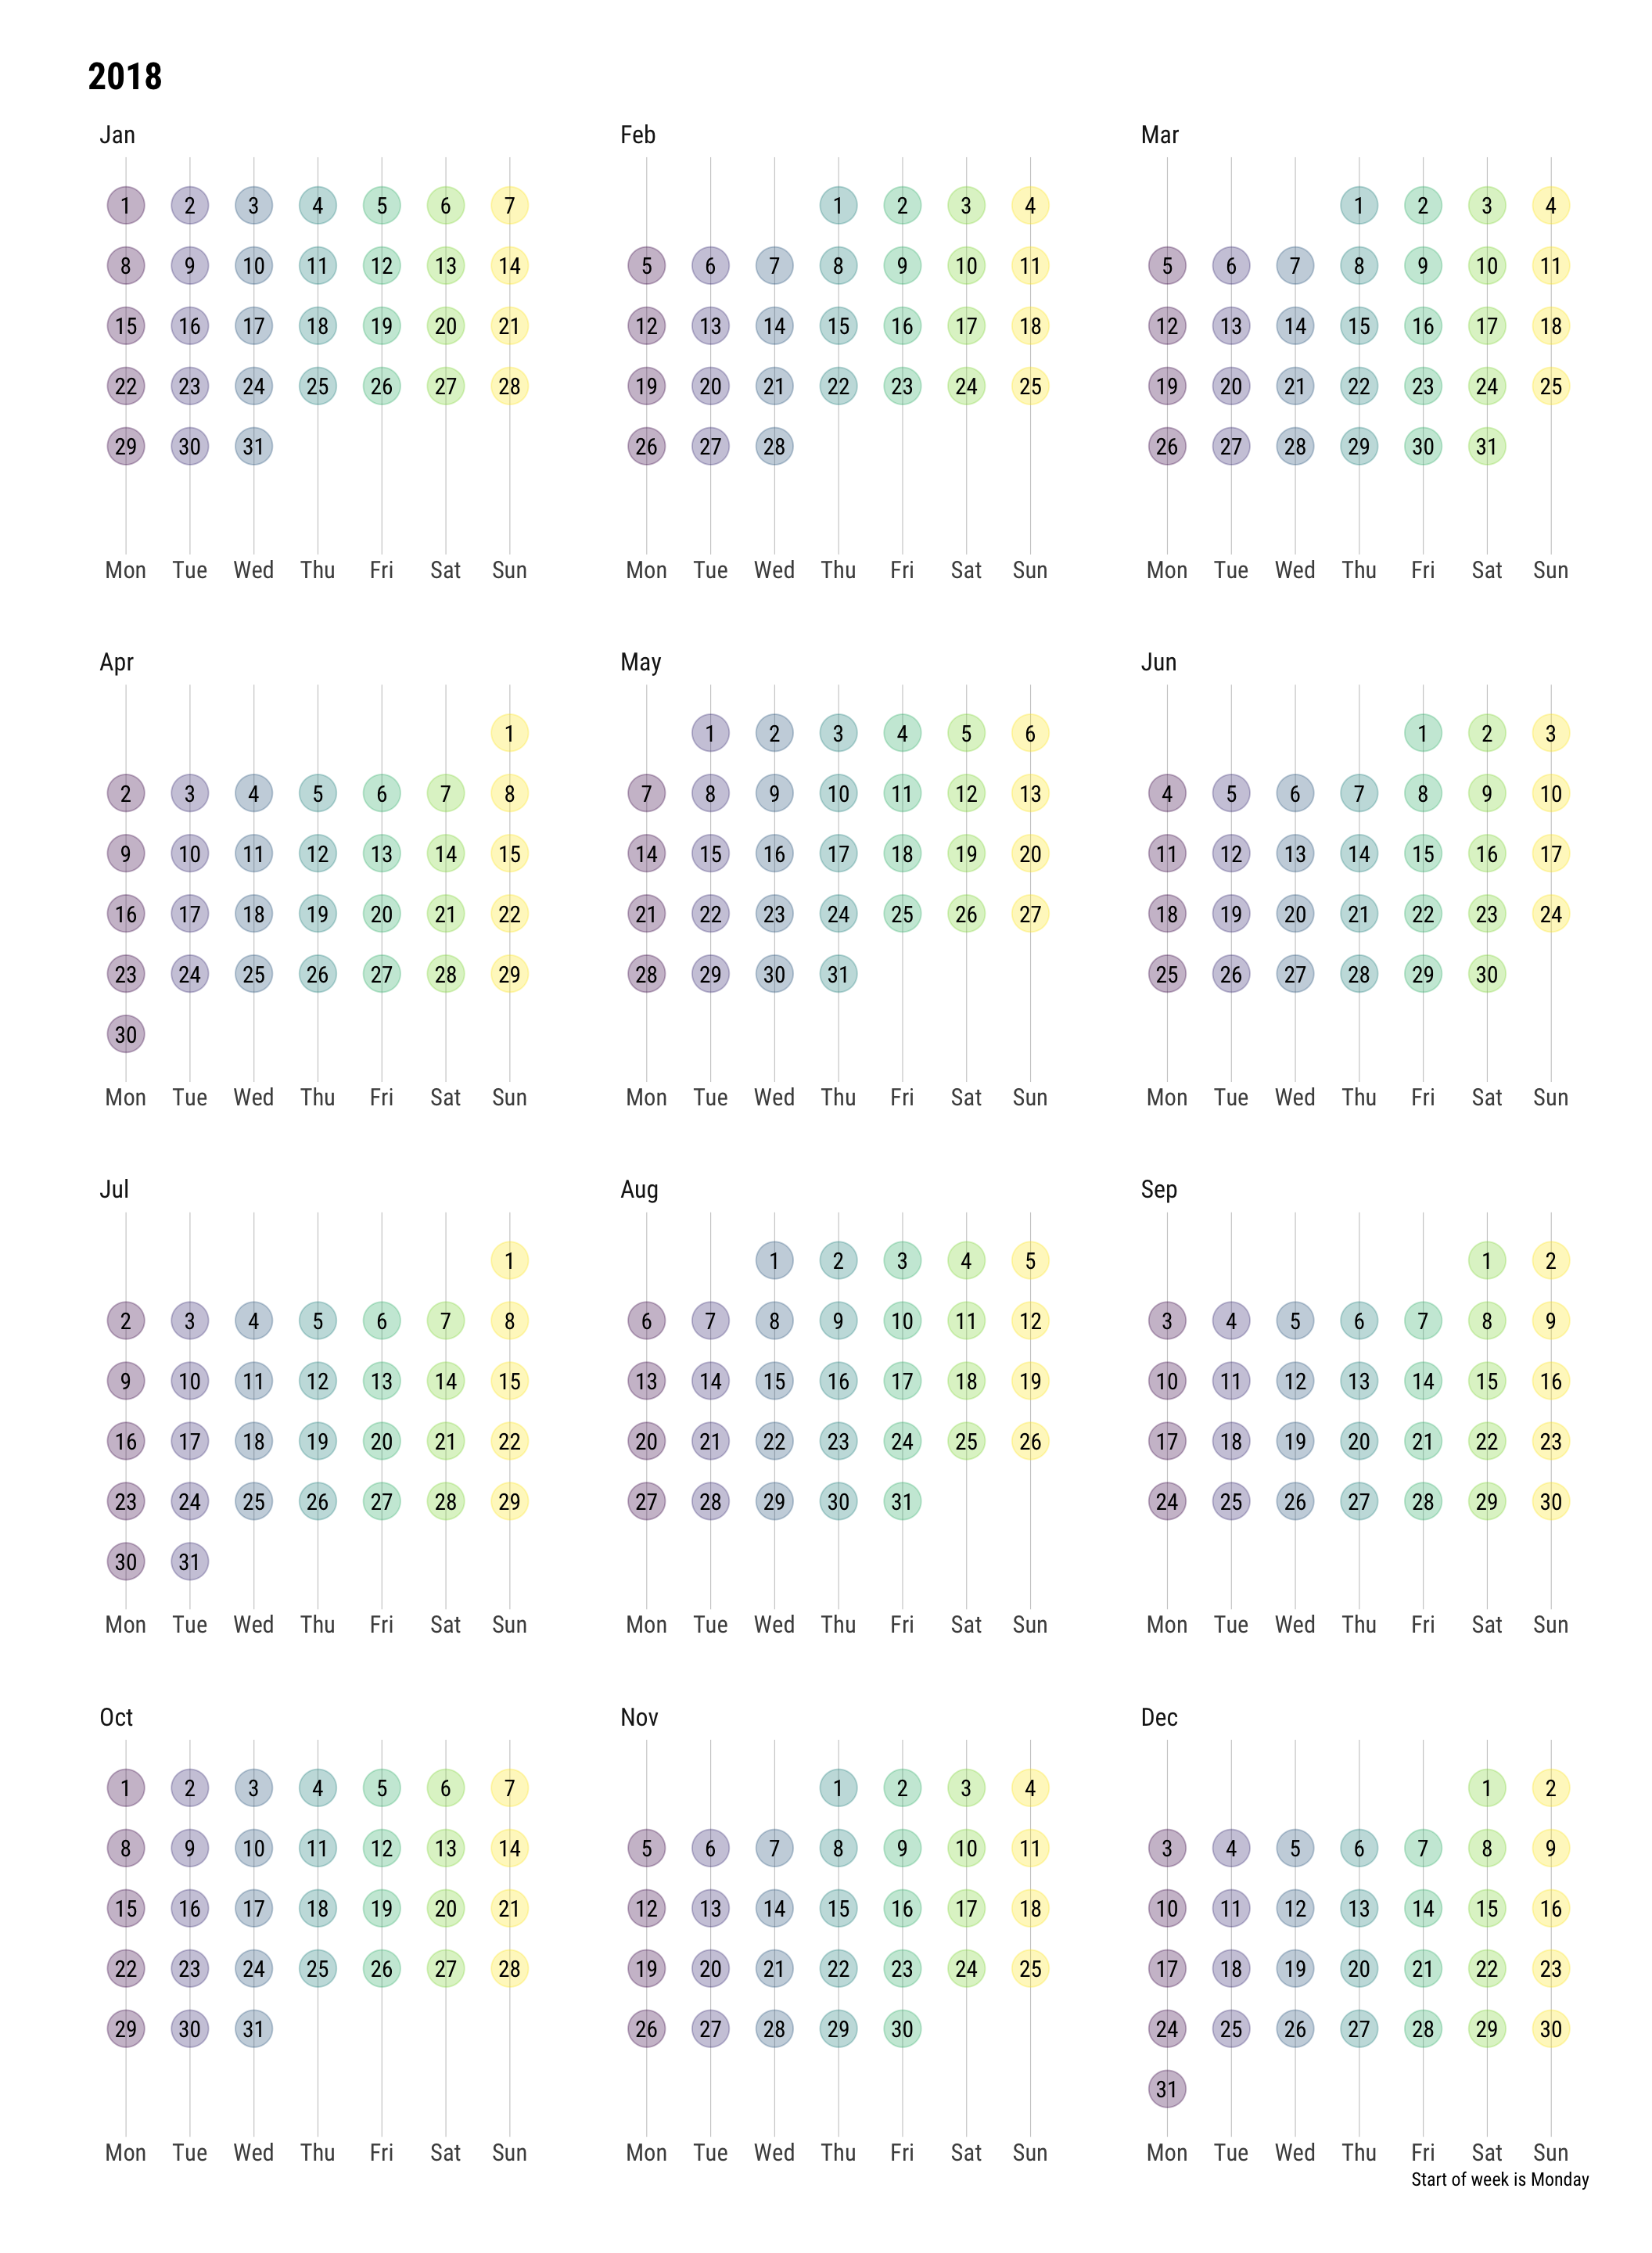 Making Calendar with ggplot + Moon Phase Calendar for fun